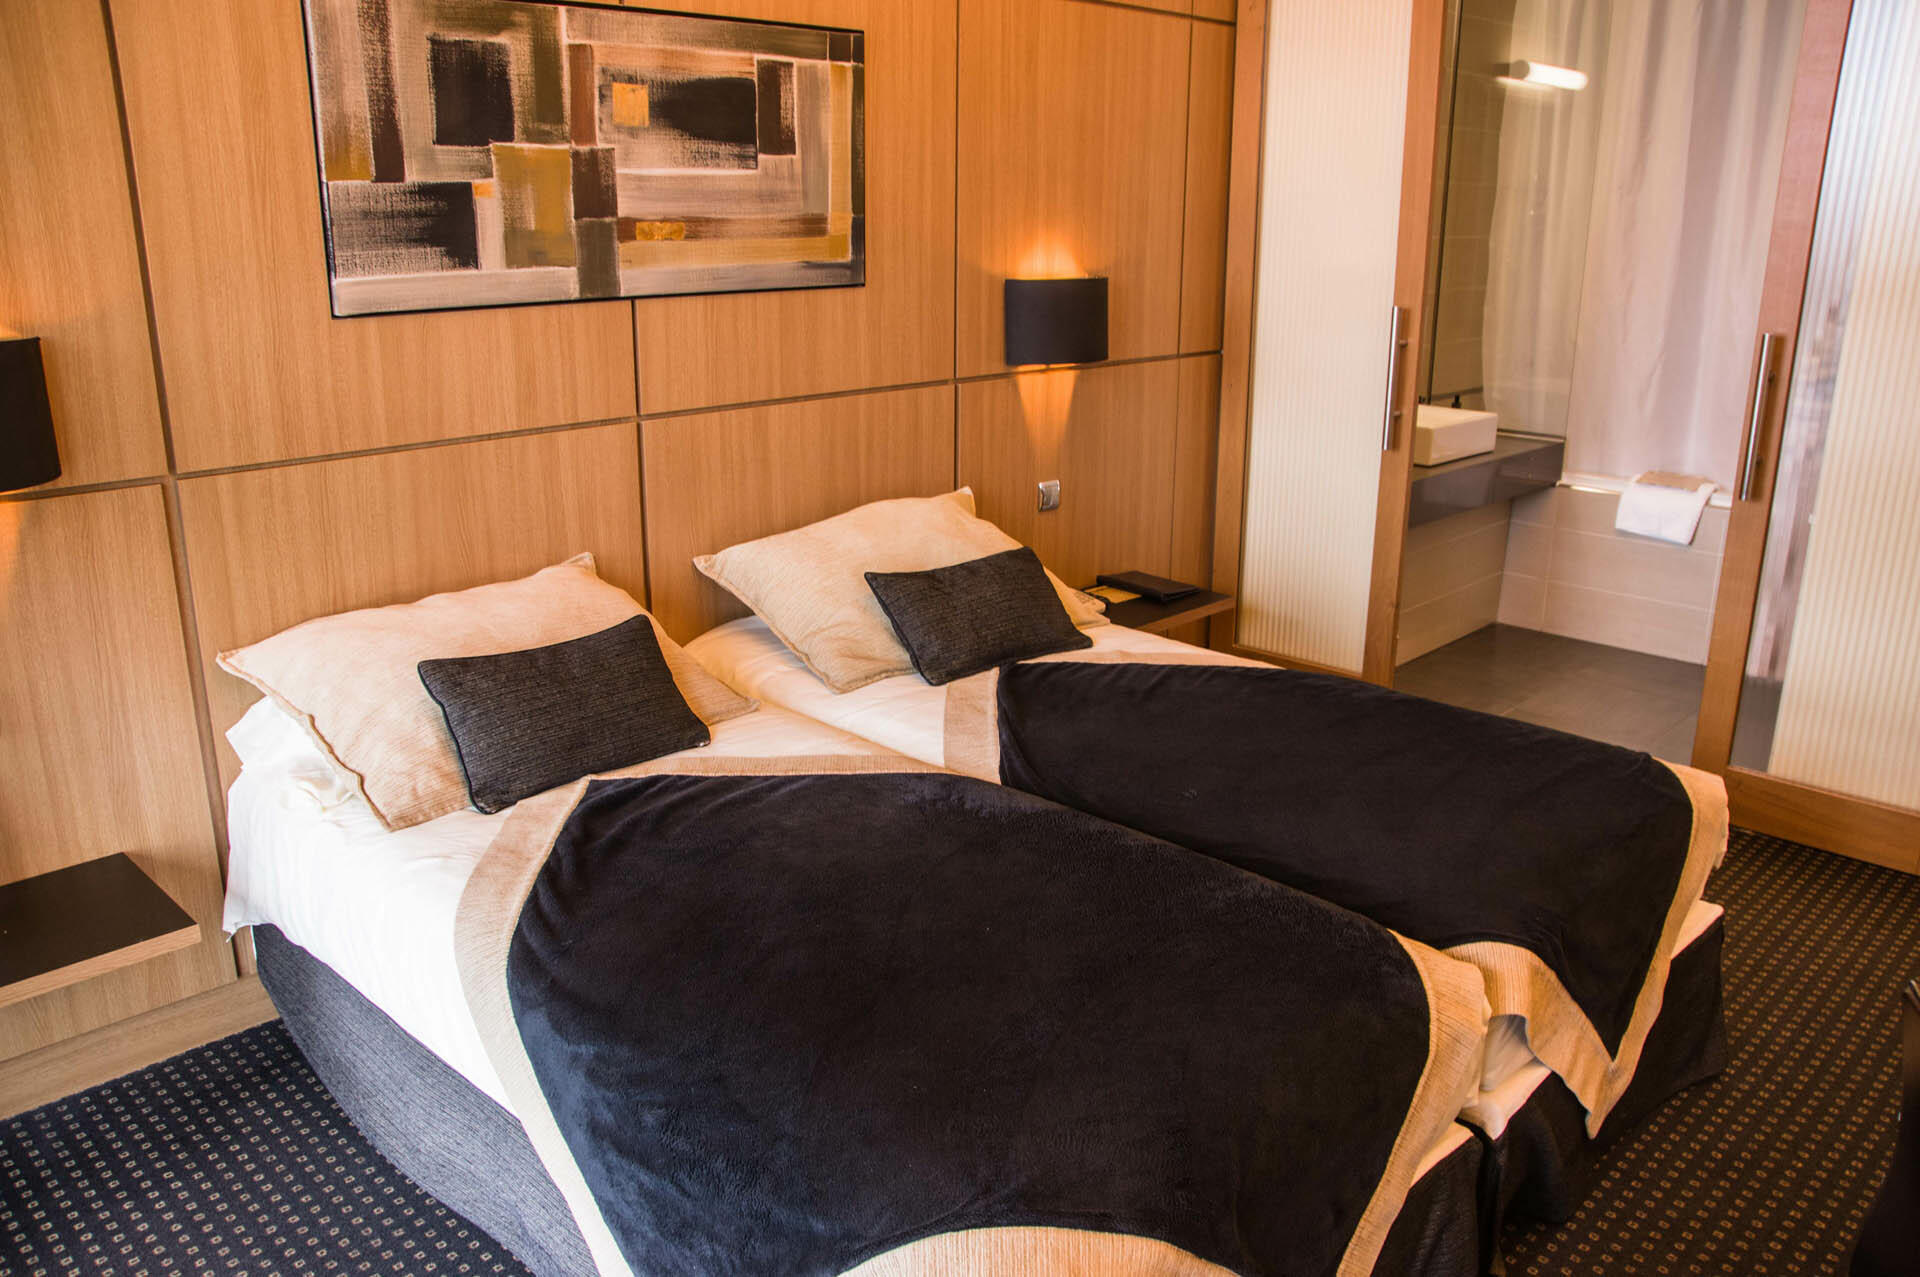 Twin room at Hotel du Pasino in Le Havre, France